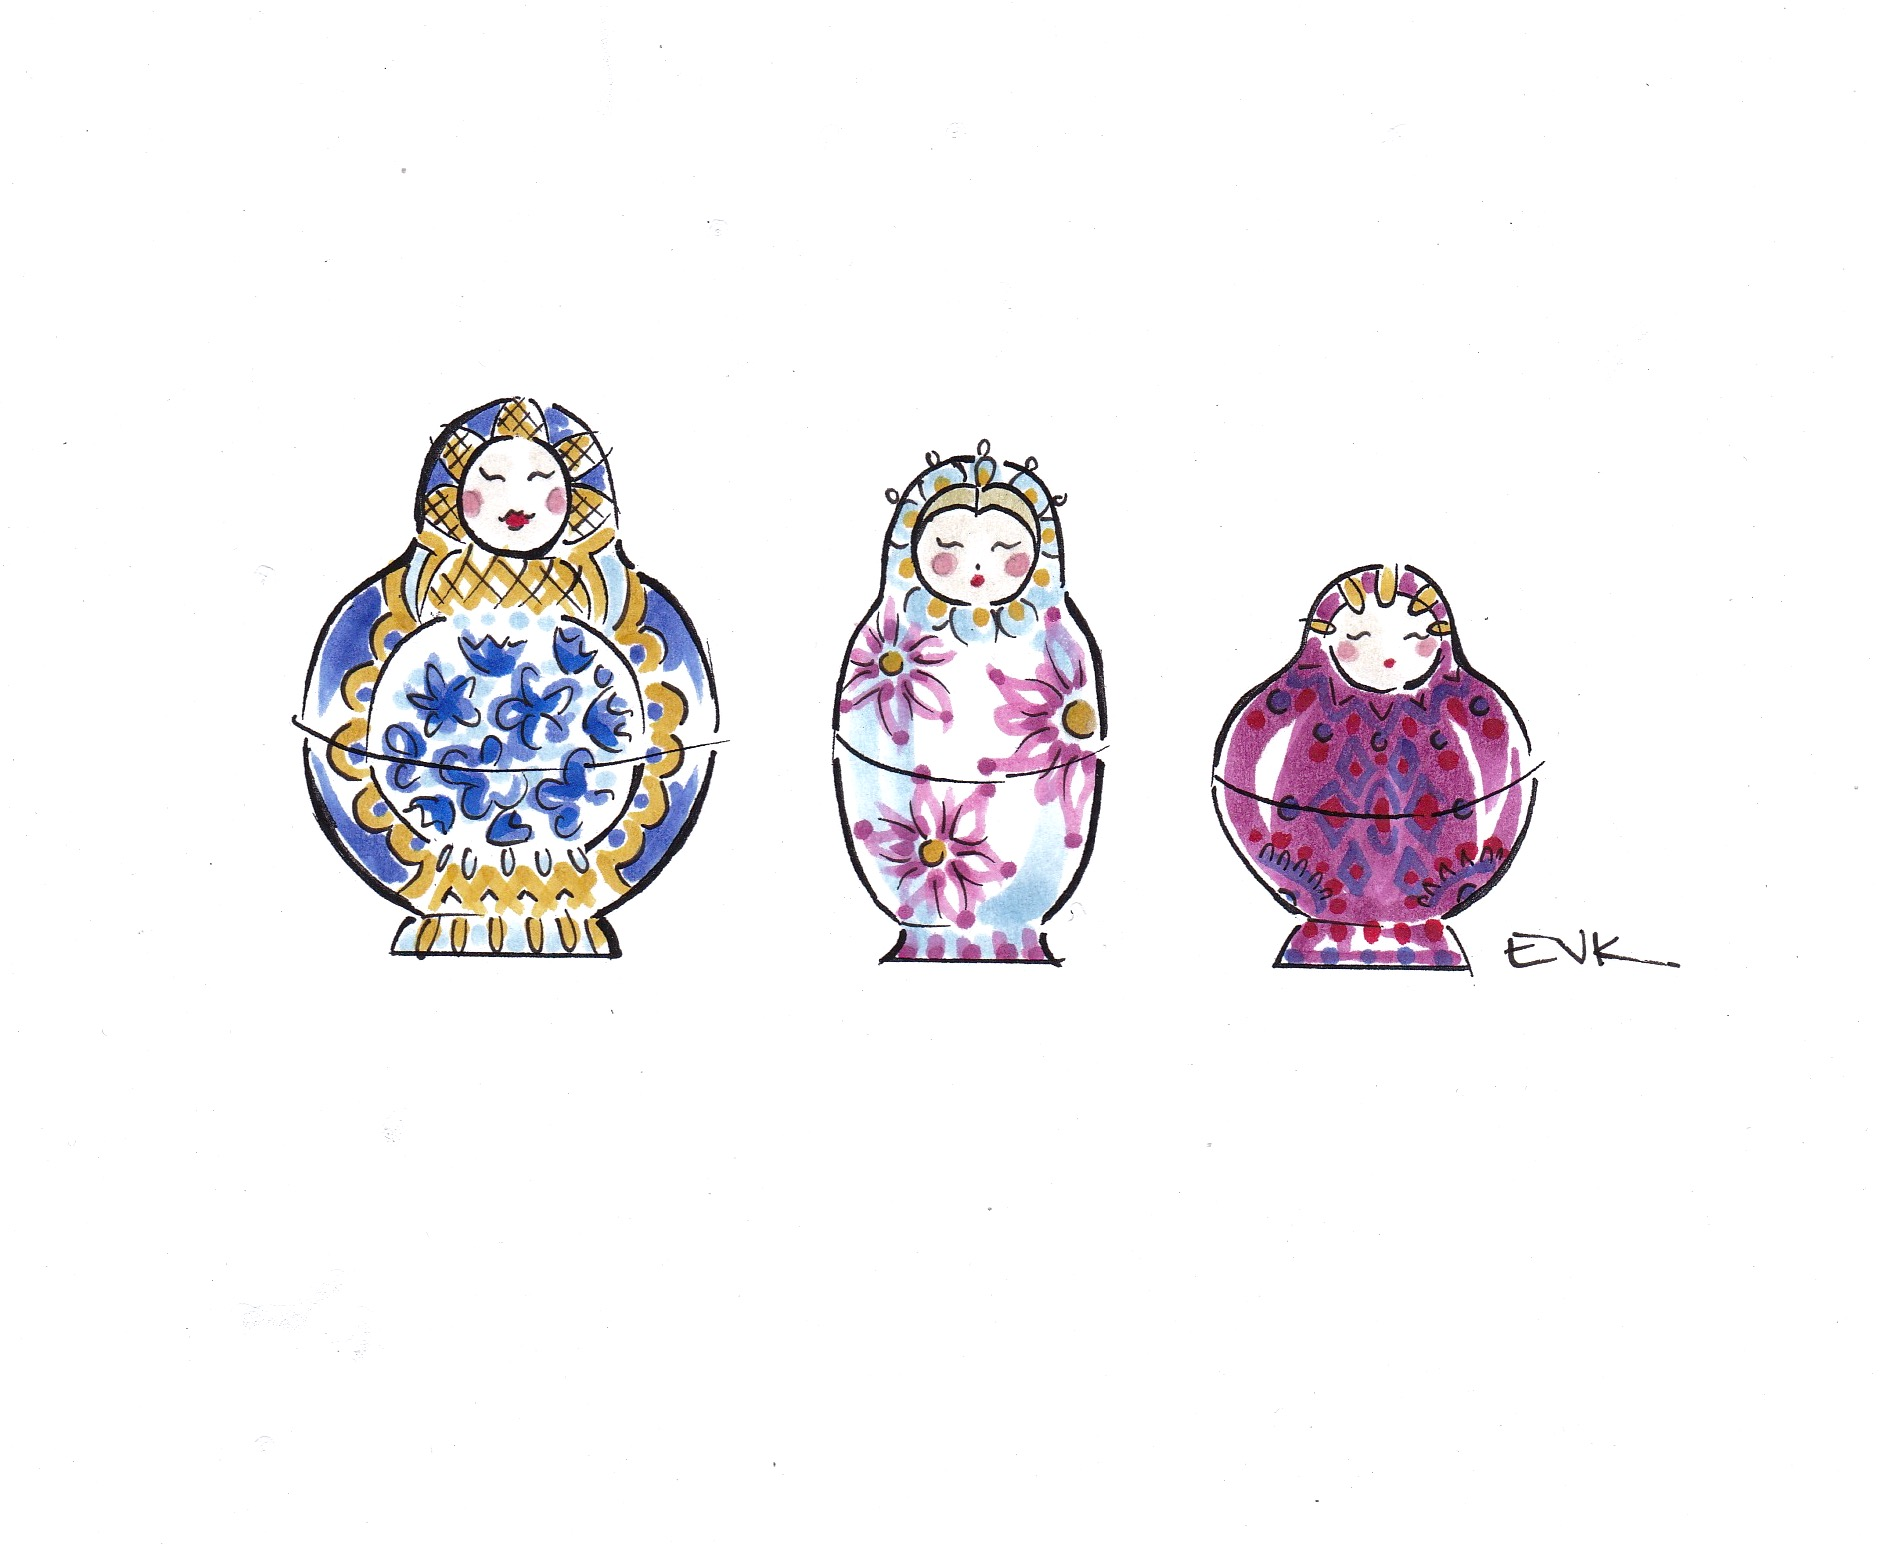 Three Russian Nesting Dolls 2015